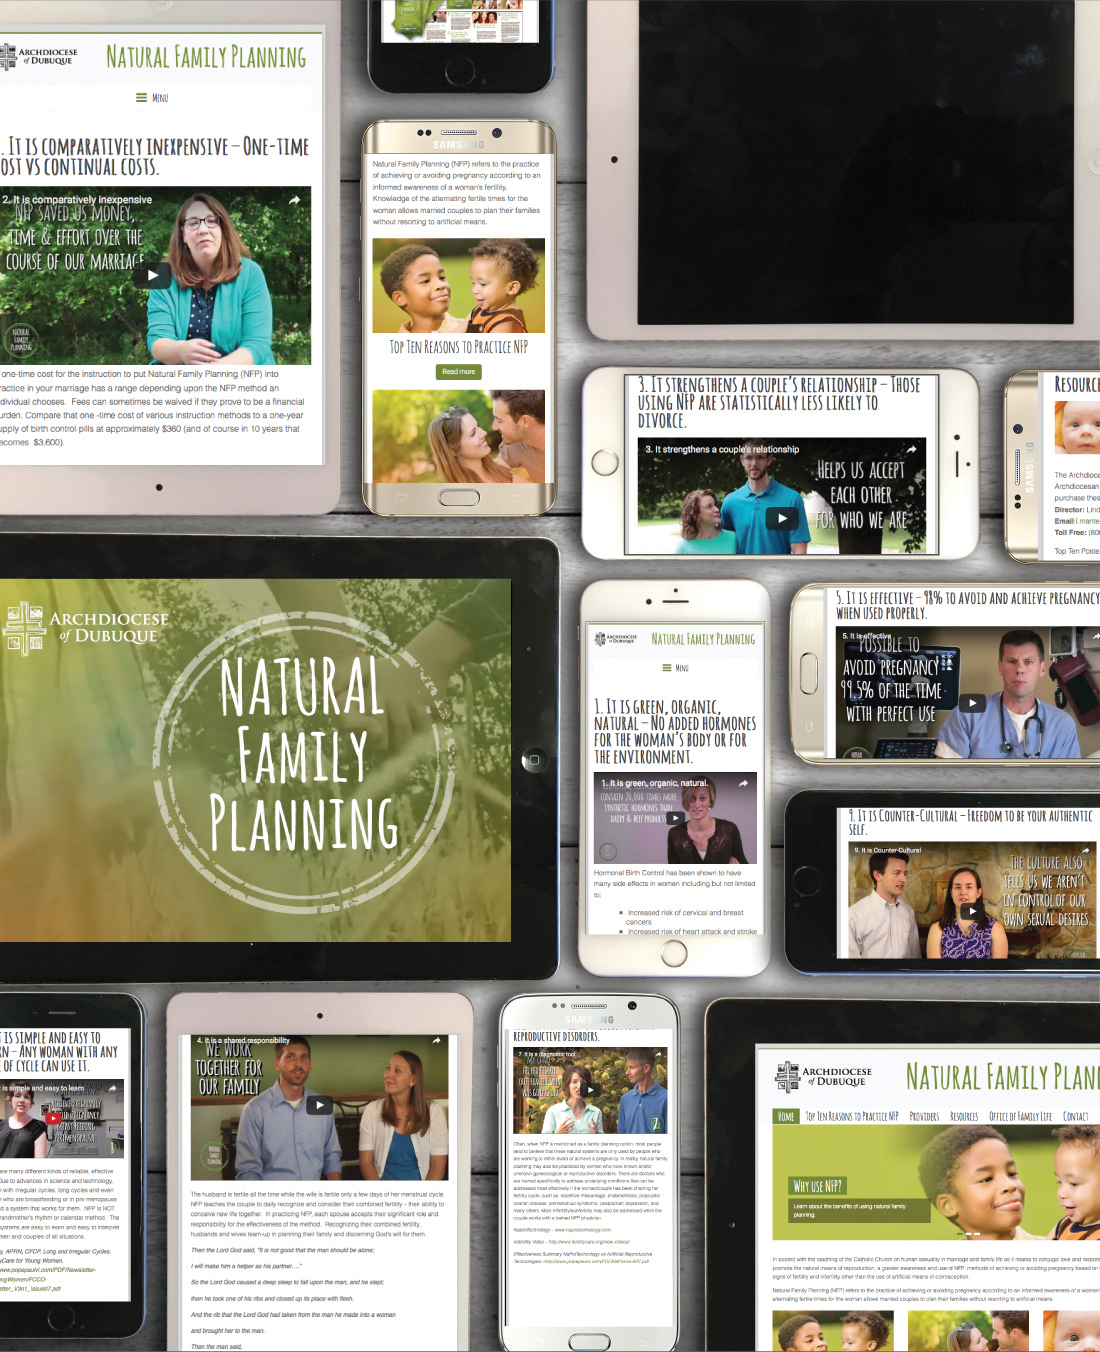 Video series promotes benefits of natural family planning